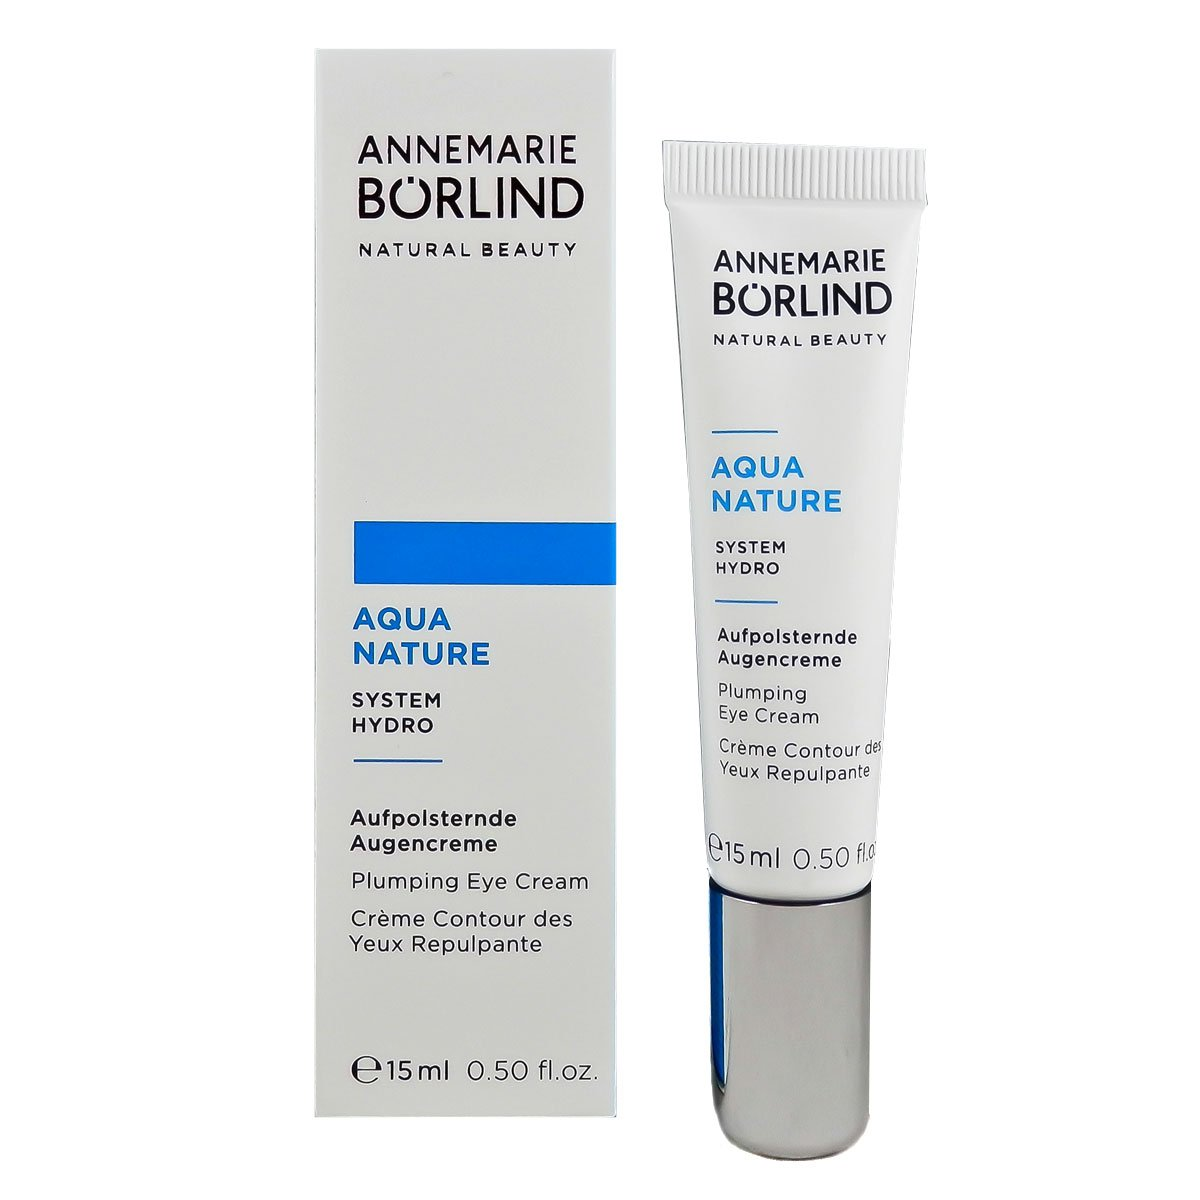 Annemarie Börlind Aquanature Aufpolsternde Augencreme, 1er Pack (1 x 15 ml) 4011061214905